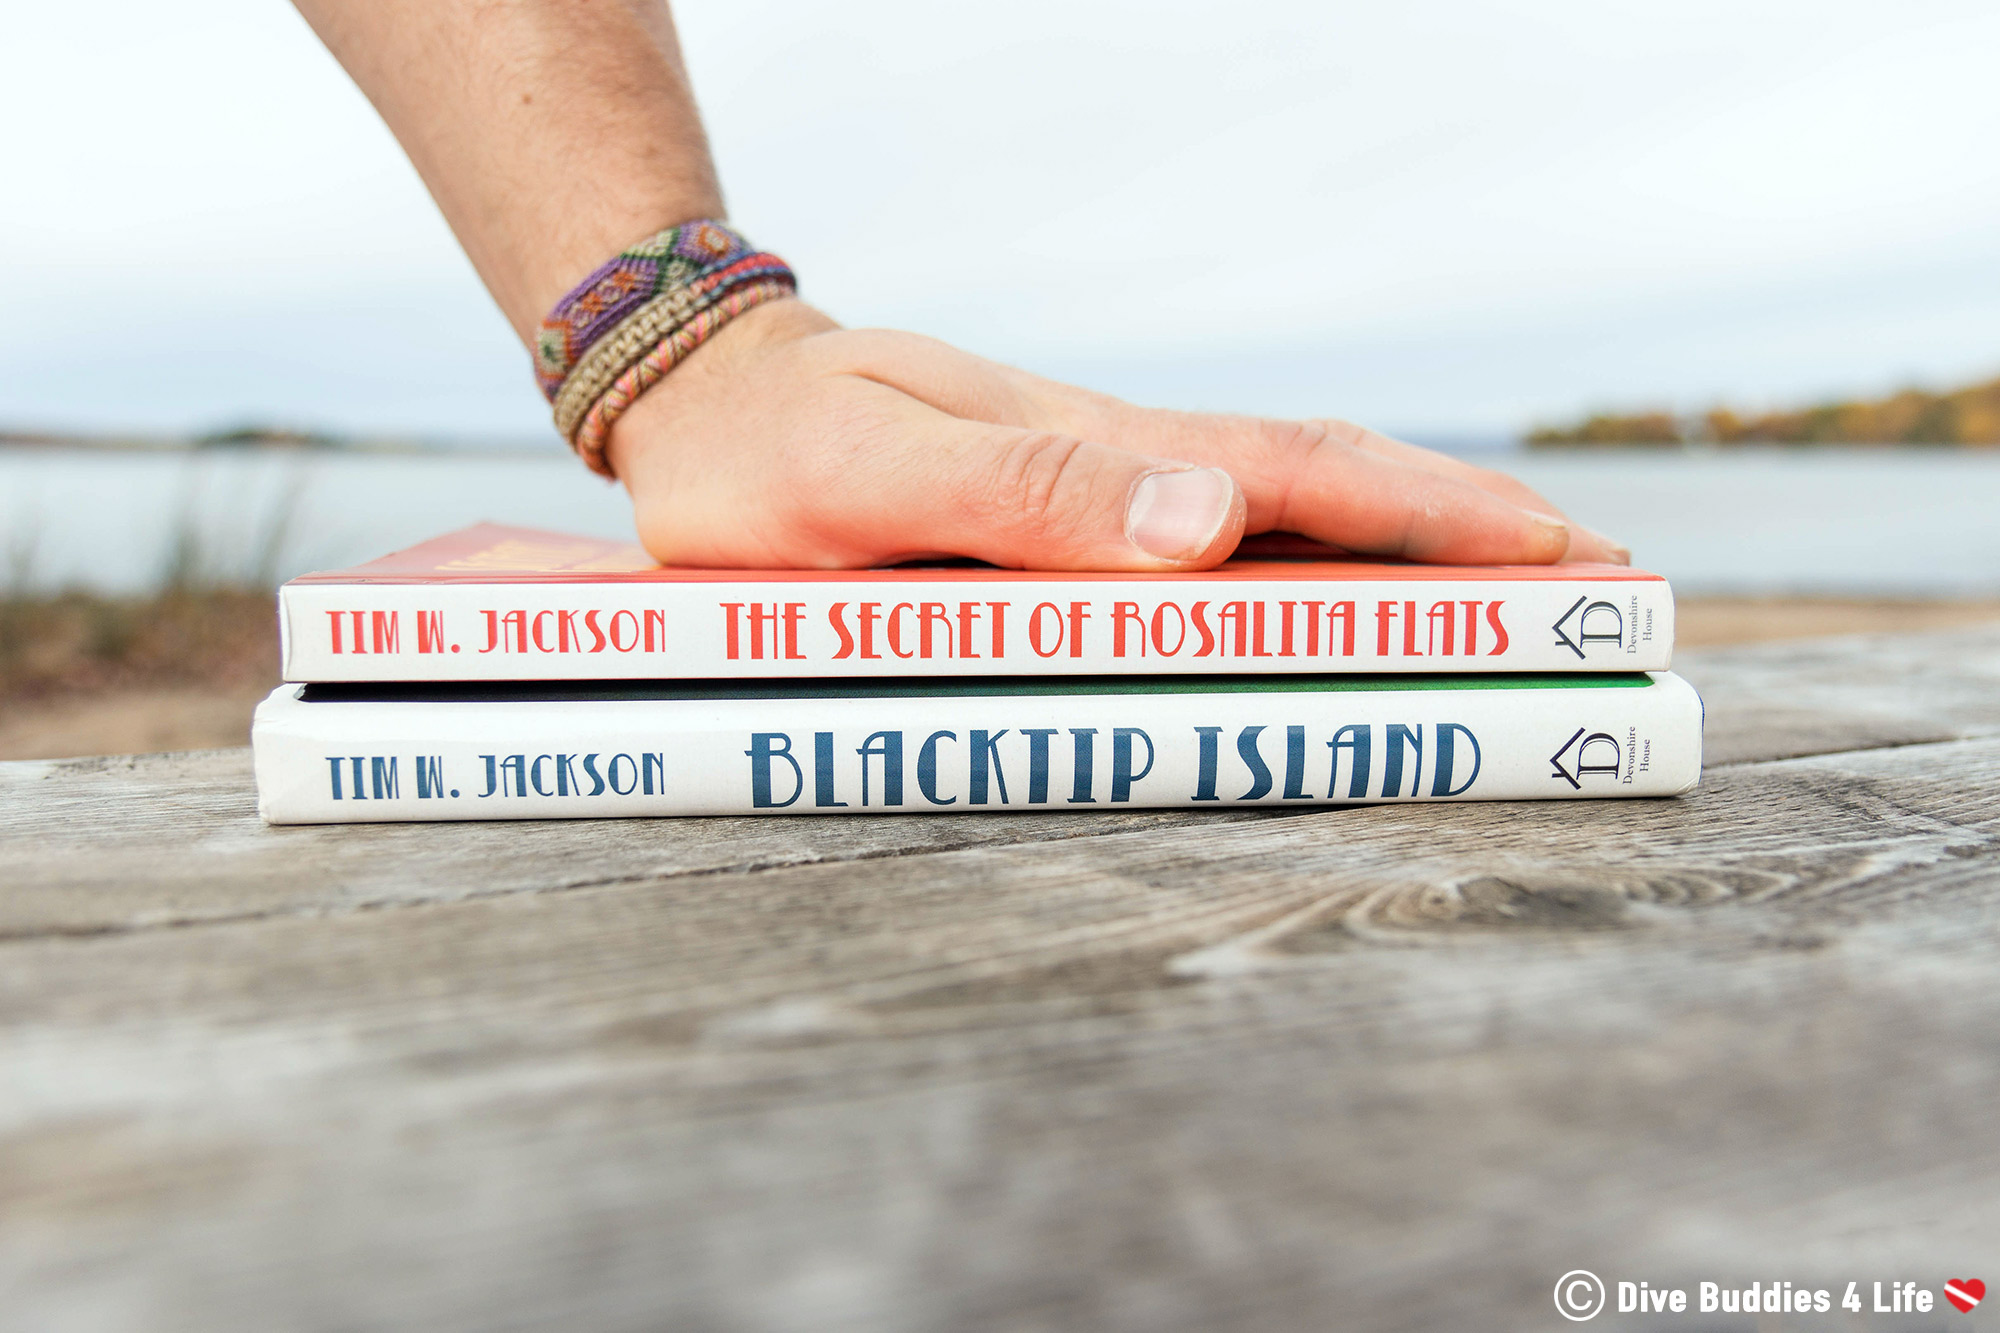 Rosalita Flats And Blacktip Scuba Diving Novels By Tim W. Jackson With Joey's Hand Holding Them